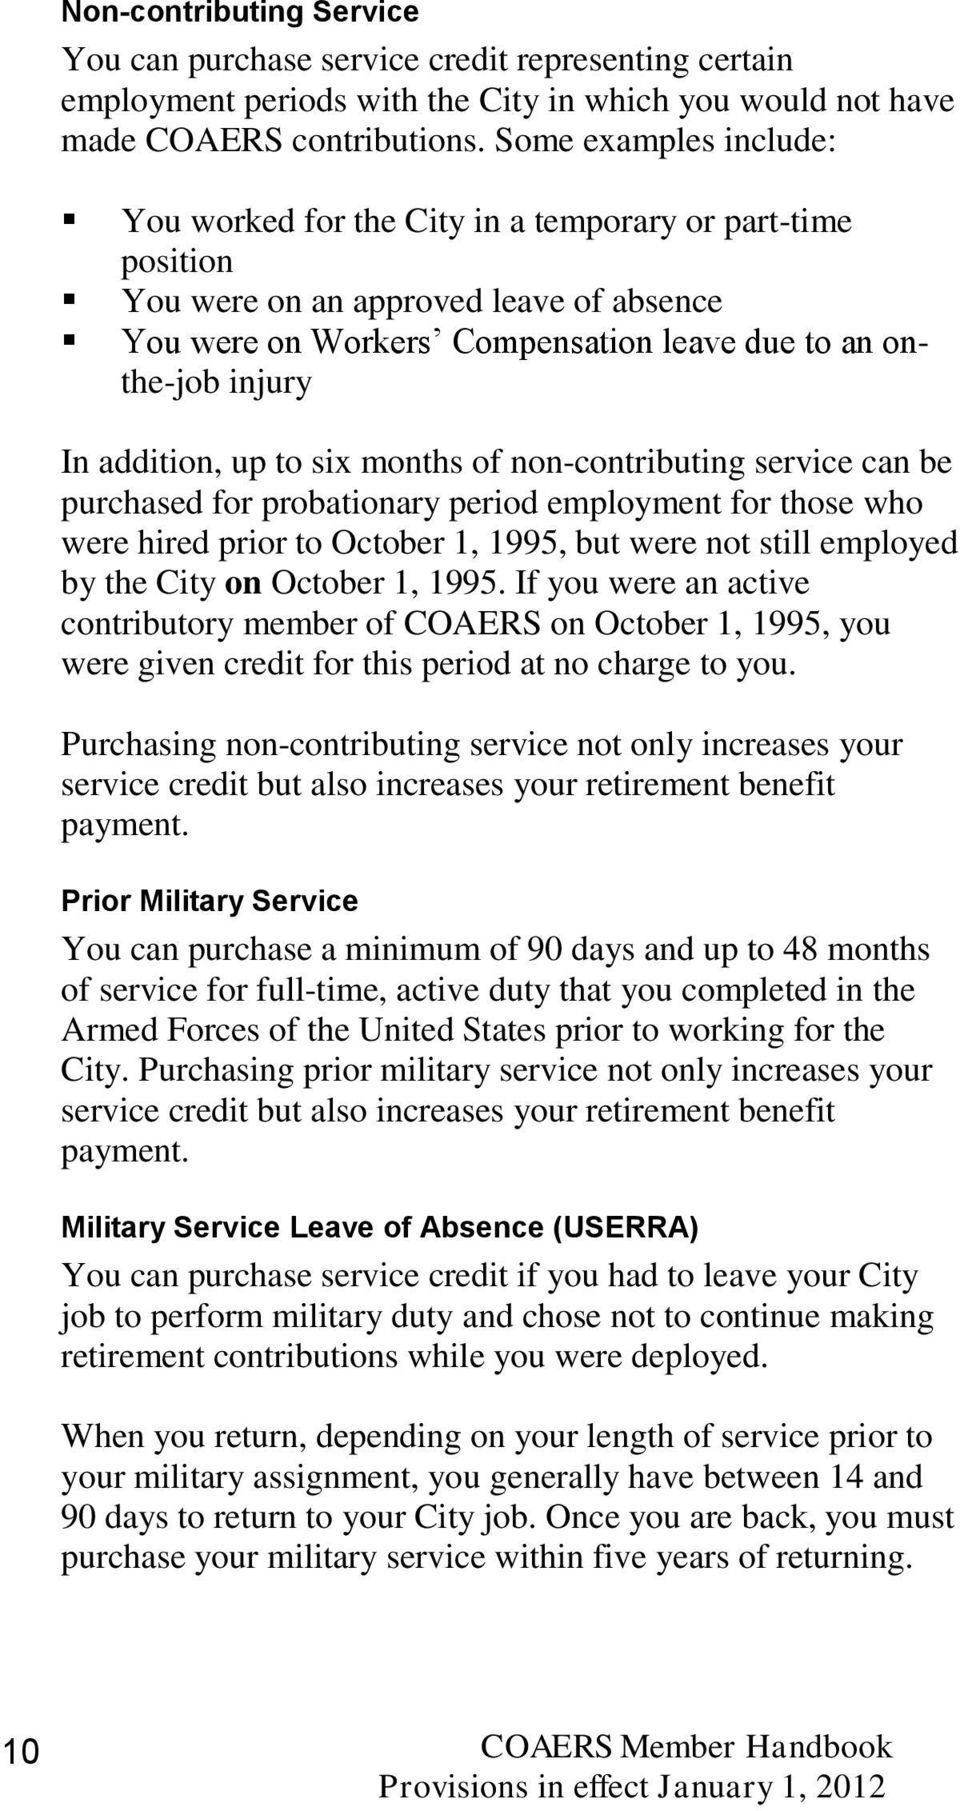 addition, up to six months of non-contributing service can be purchased for probationary period employment for those who were hired prior to October 1, 1995, but were not still employed by the City